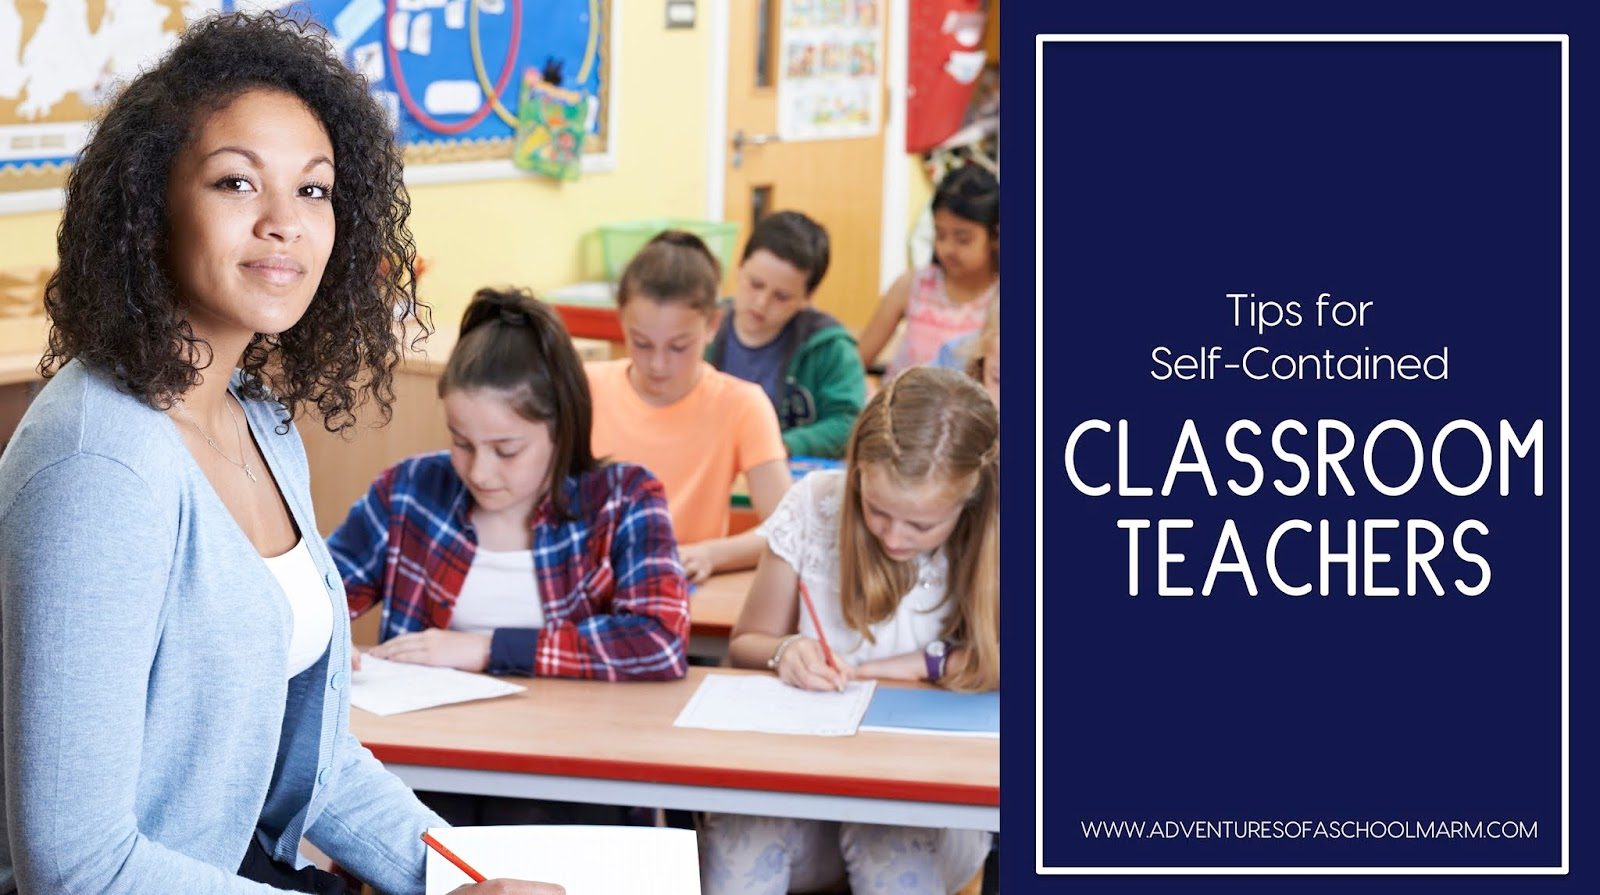 Self-contained teachers keep their homeroom students all day and teach them every subject.